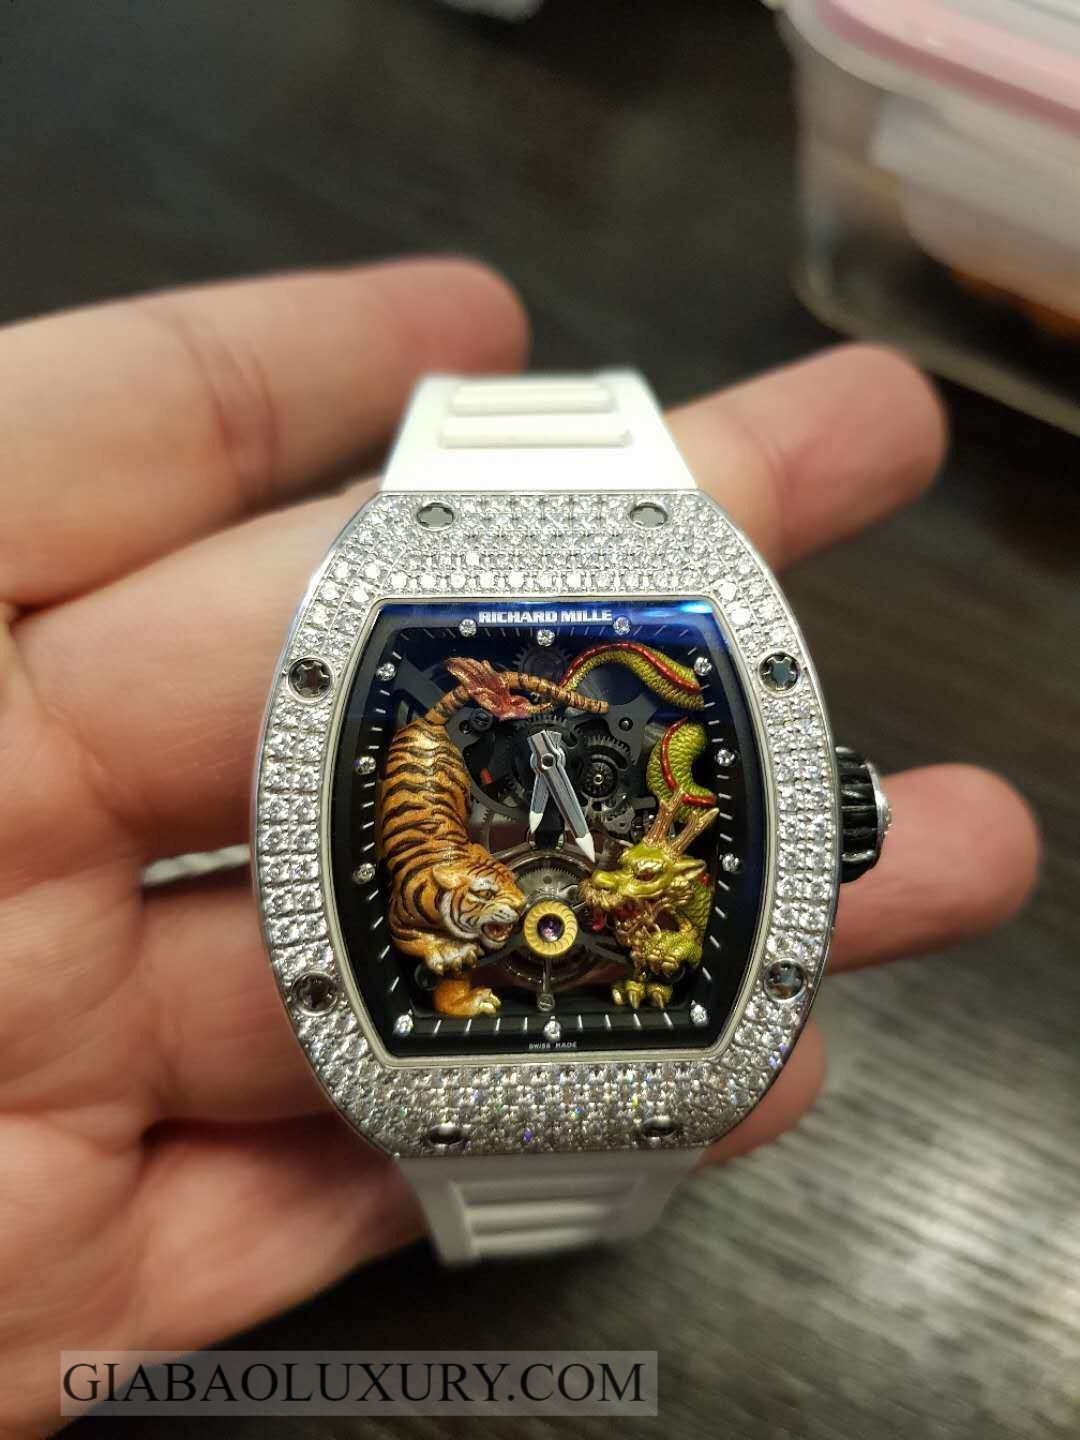 Đồng Hồ Richard Mille RM 51-01 Tourbillon Tiger and Dragon - Michelle Yeoh